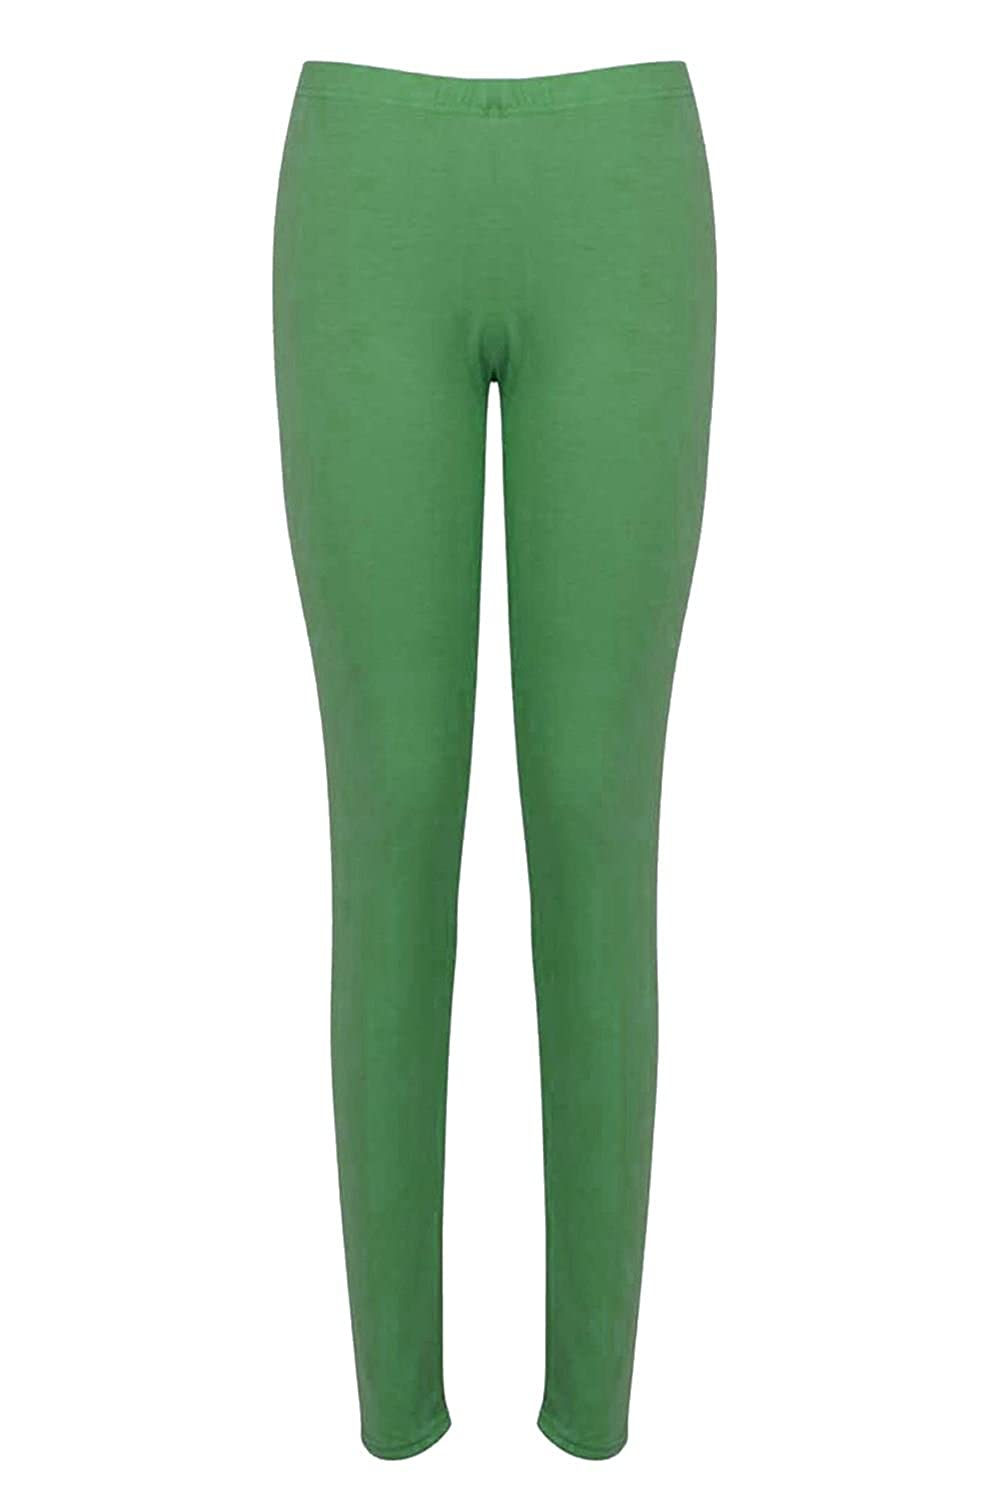 Damen Schlicht Einfach Hosen Damen Knöchellang Stretch Leggings Jeggings online bestellen